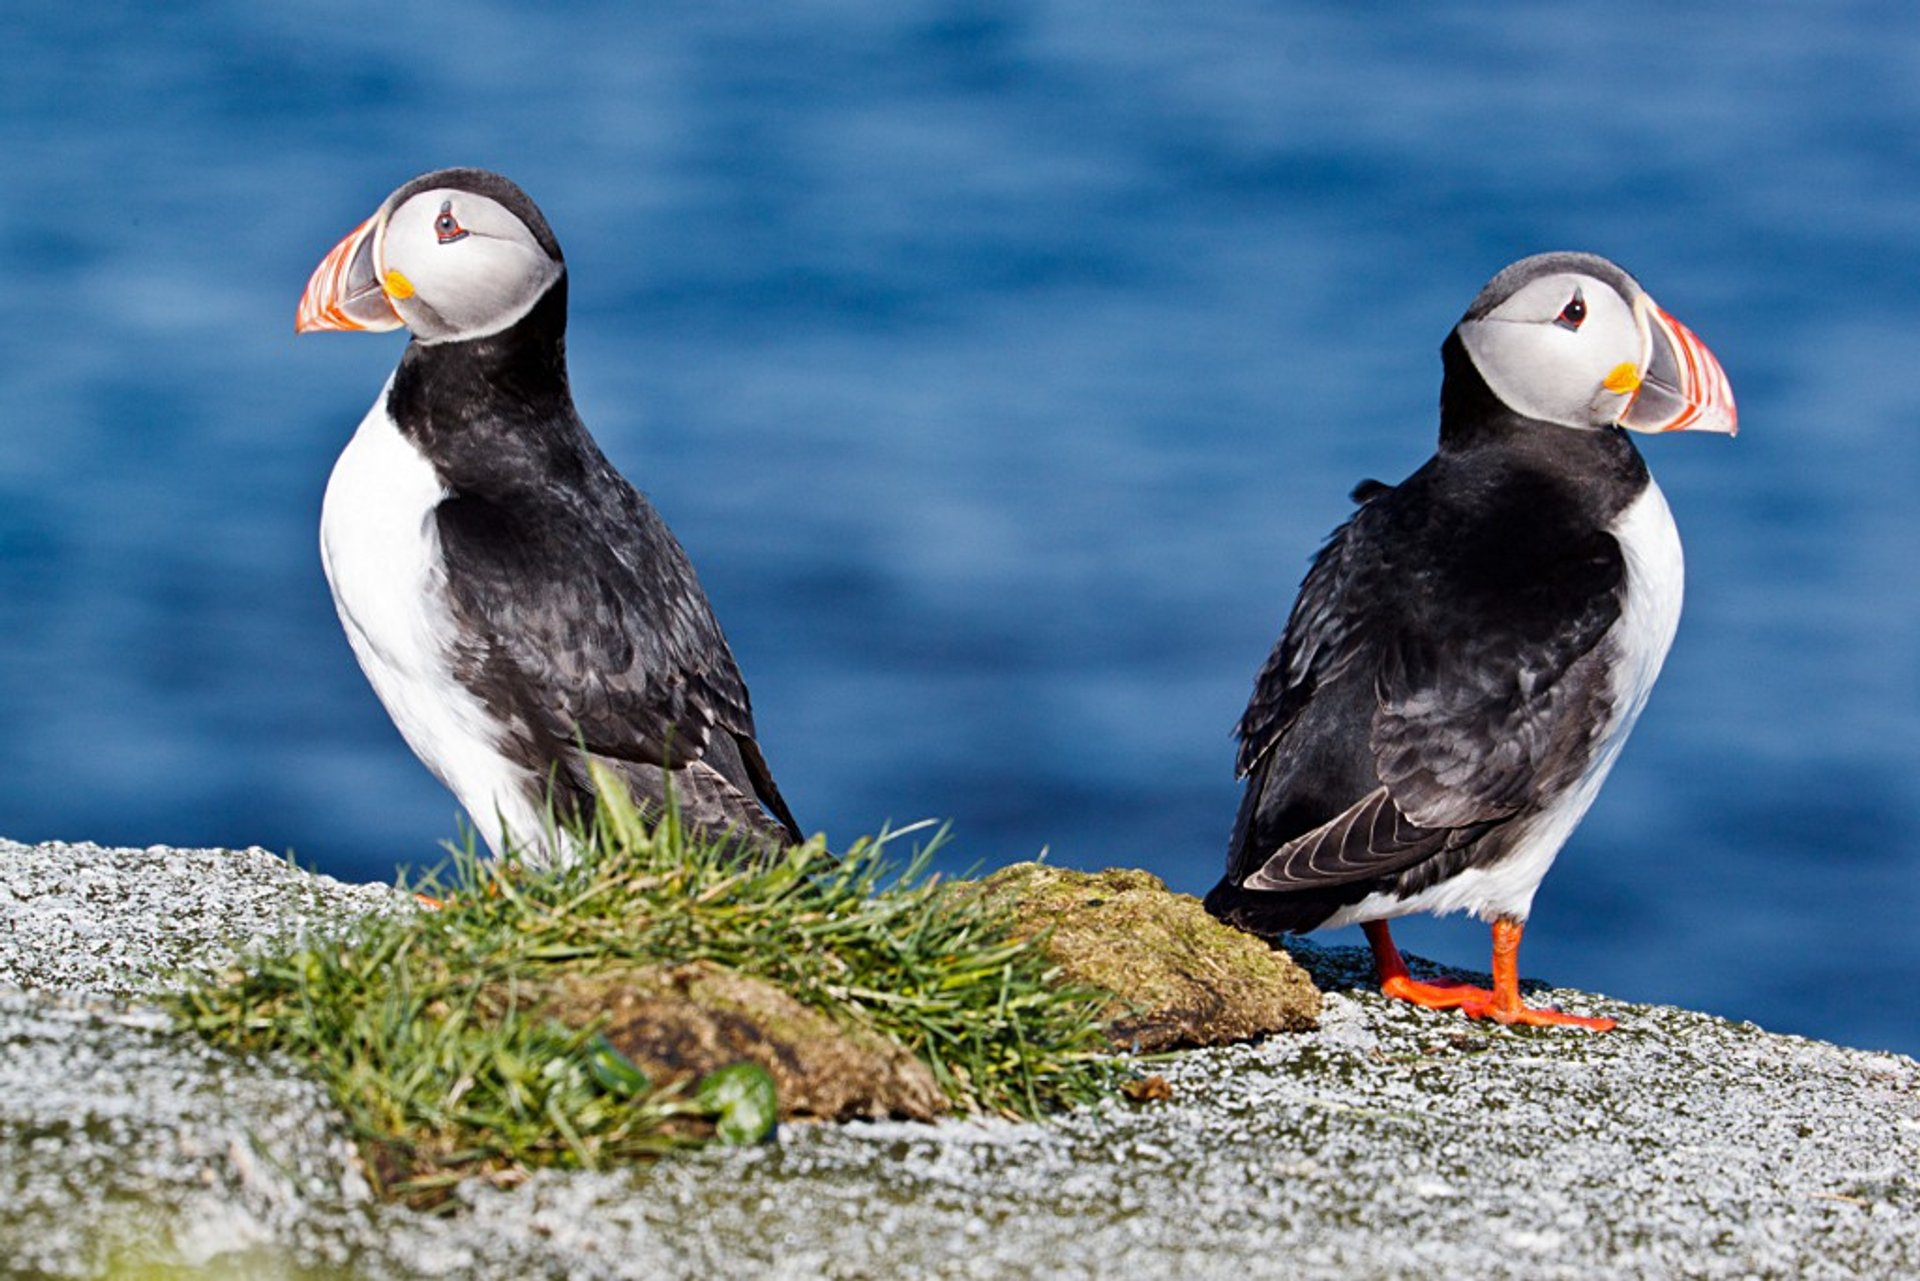 Atlantic Puffin in Norway - Best Season 2020